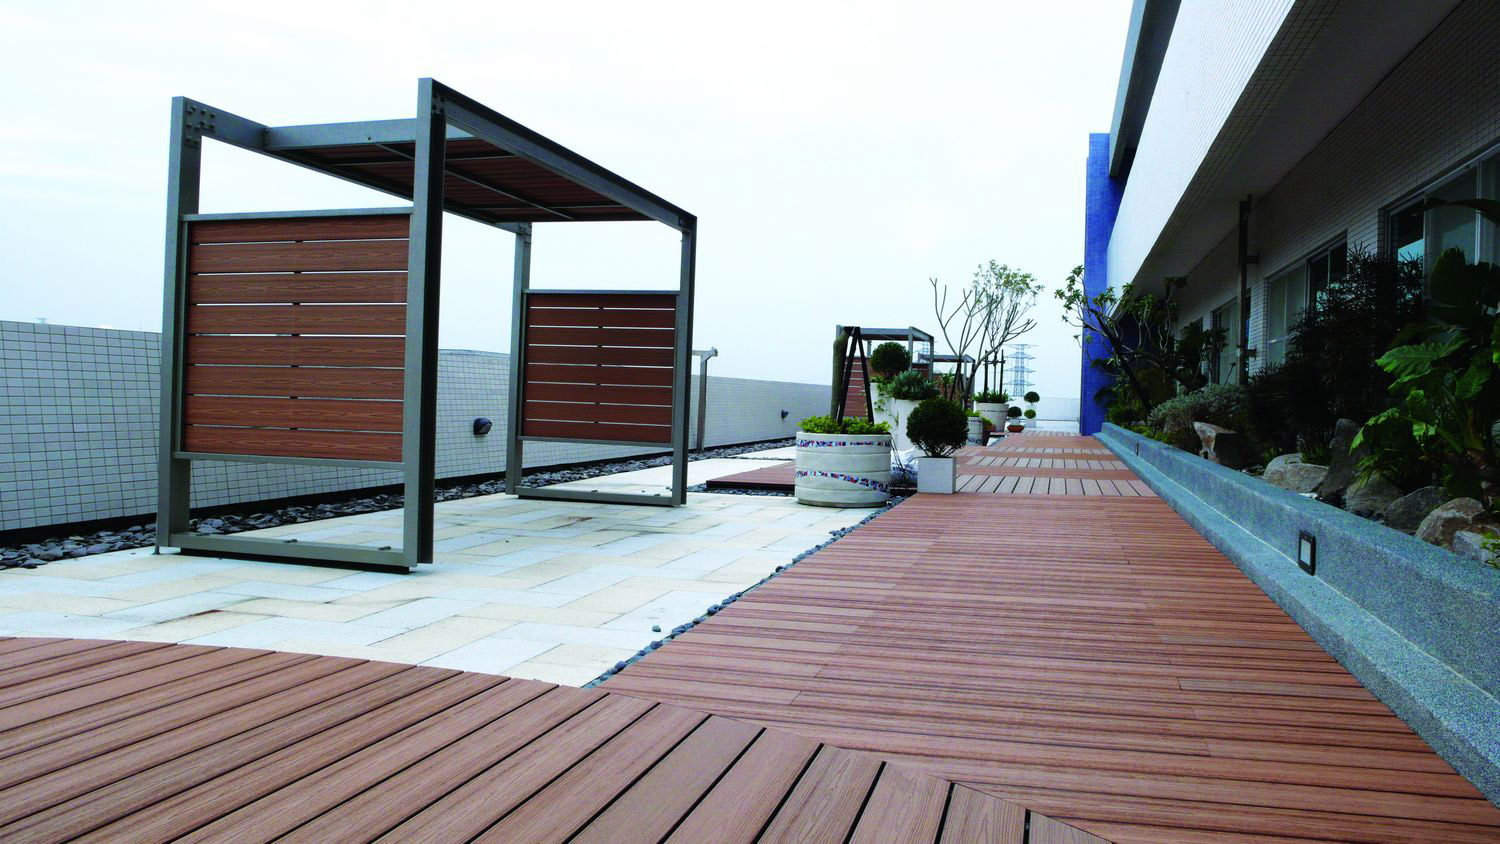 Wood Plastic Composite wpc decking Flooring Tile